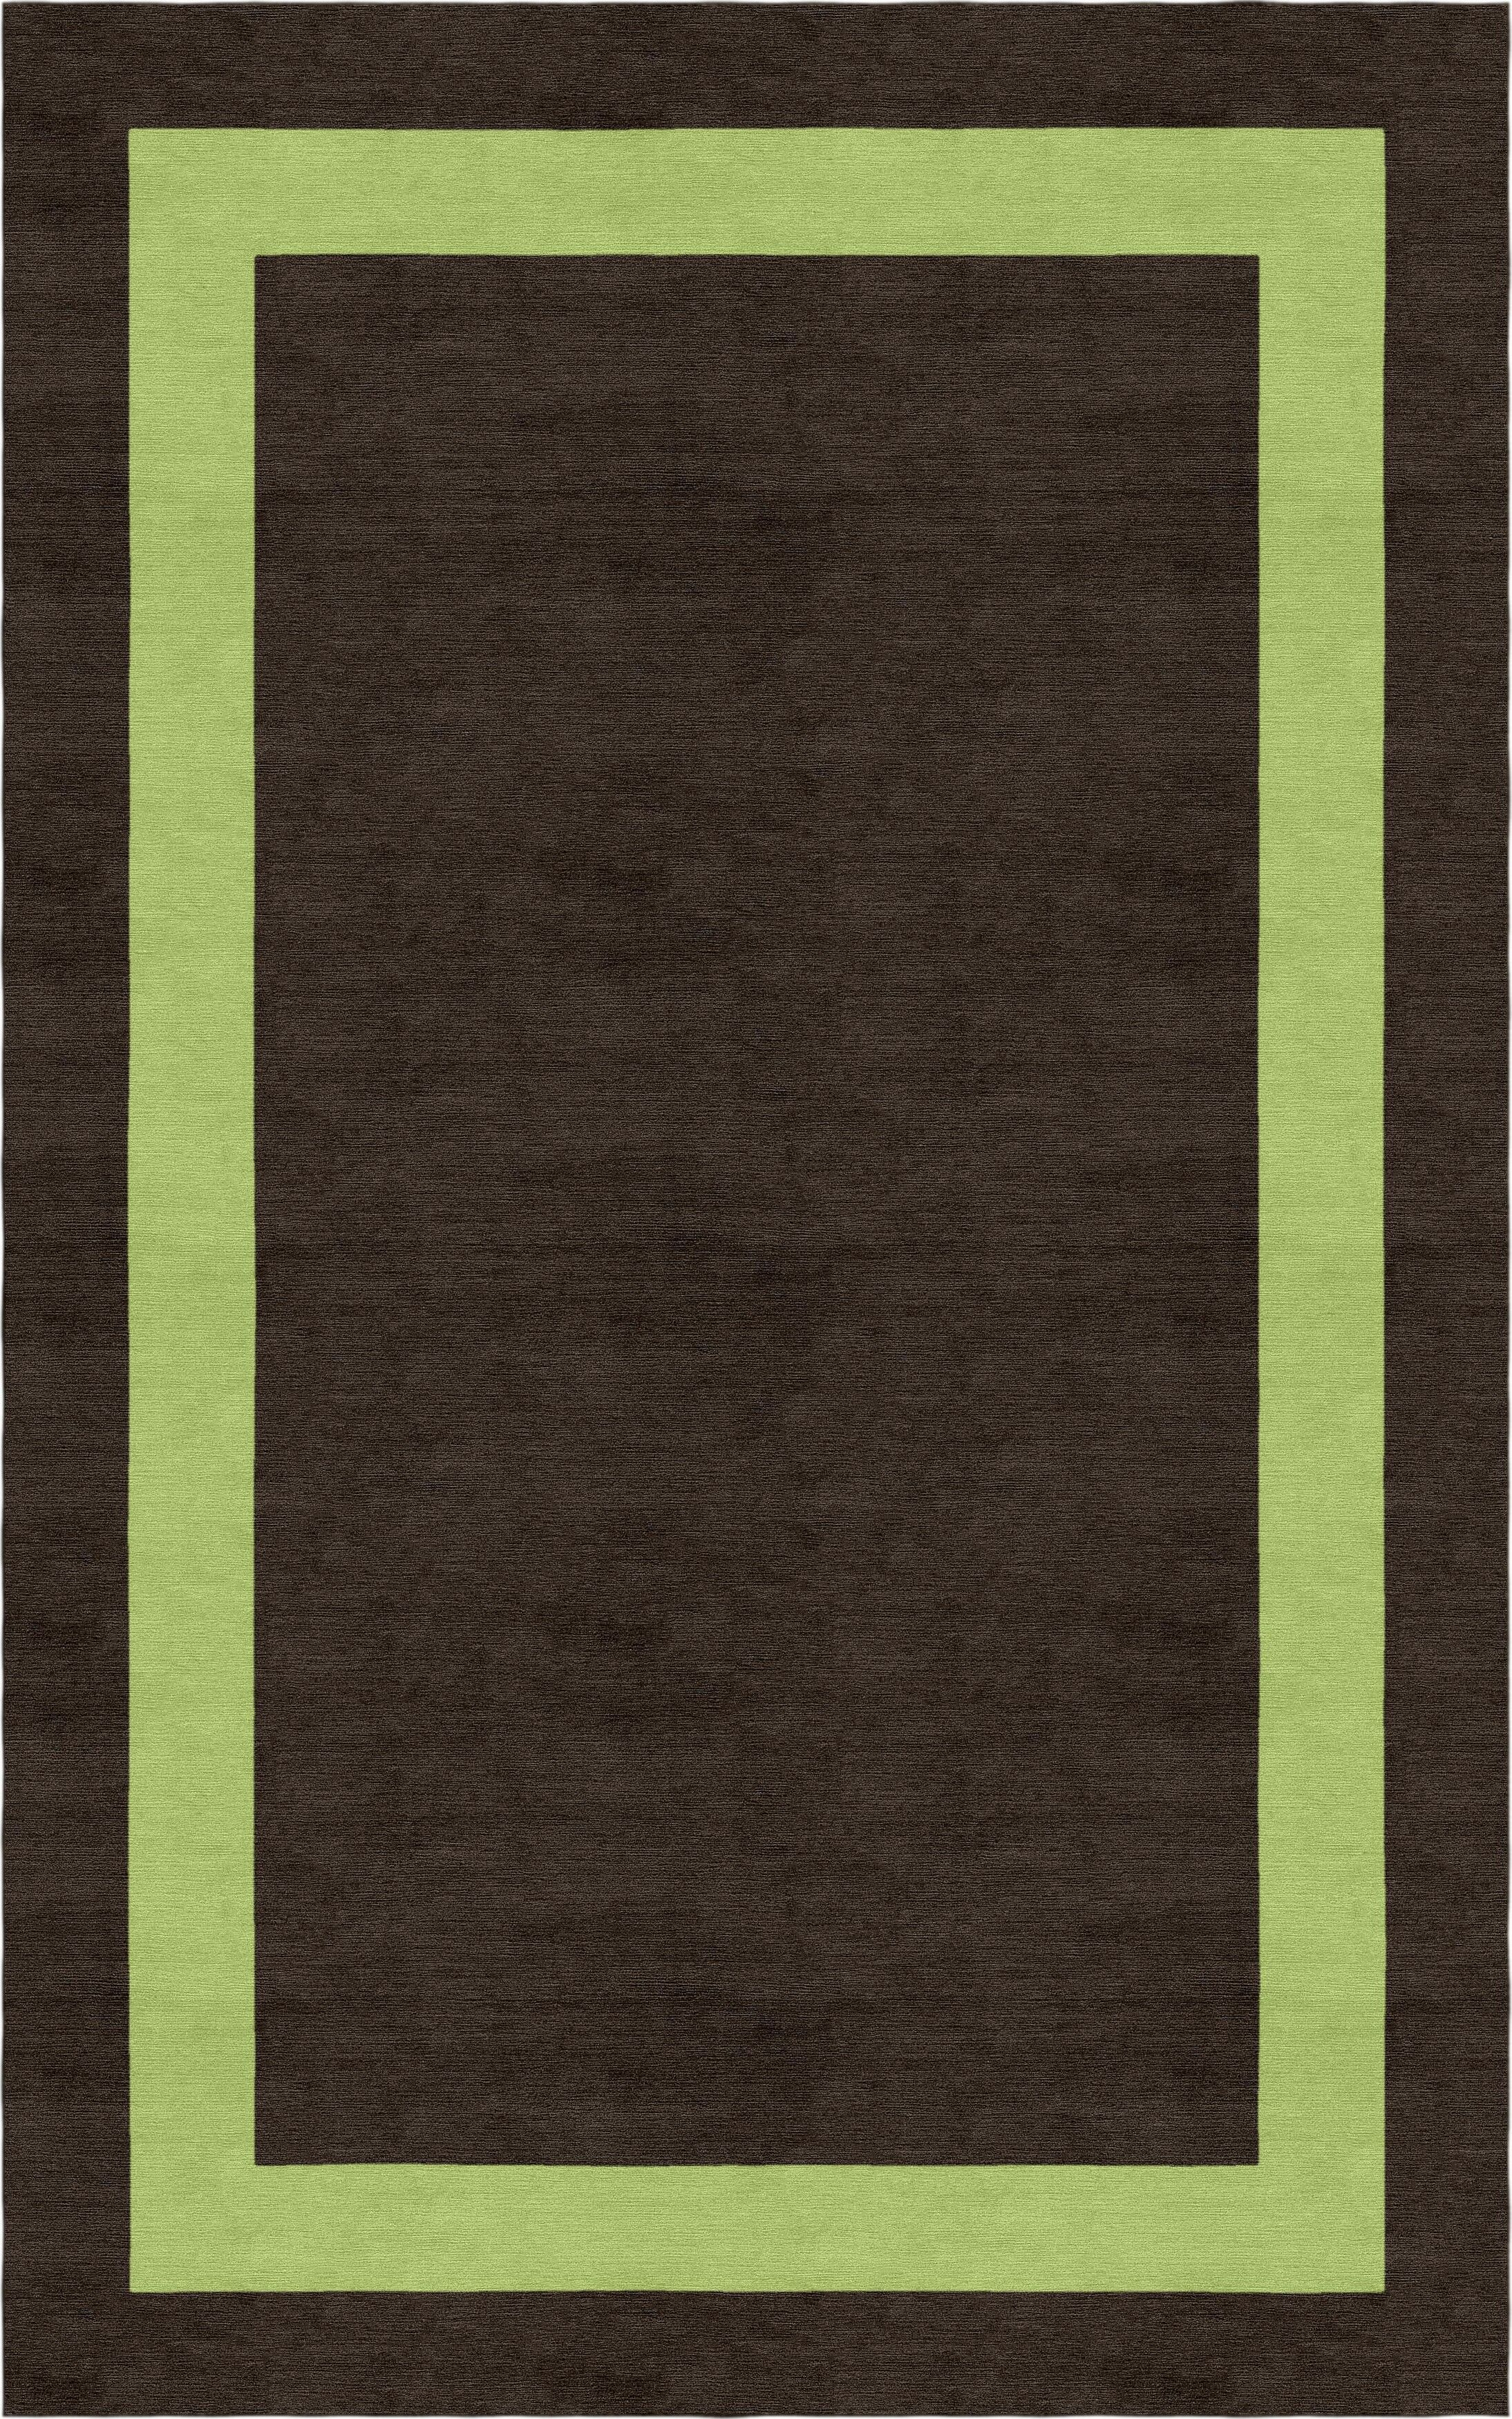 Sooriyakumar Border Hand-Tufted Wool Brown/Green Area Rug Rug Size: Rectangle 8' x 10'